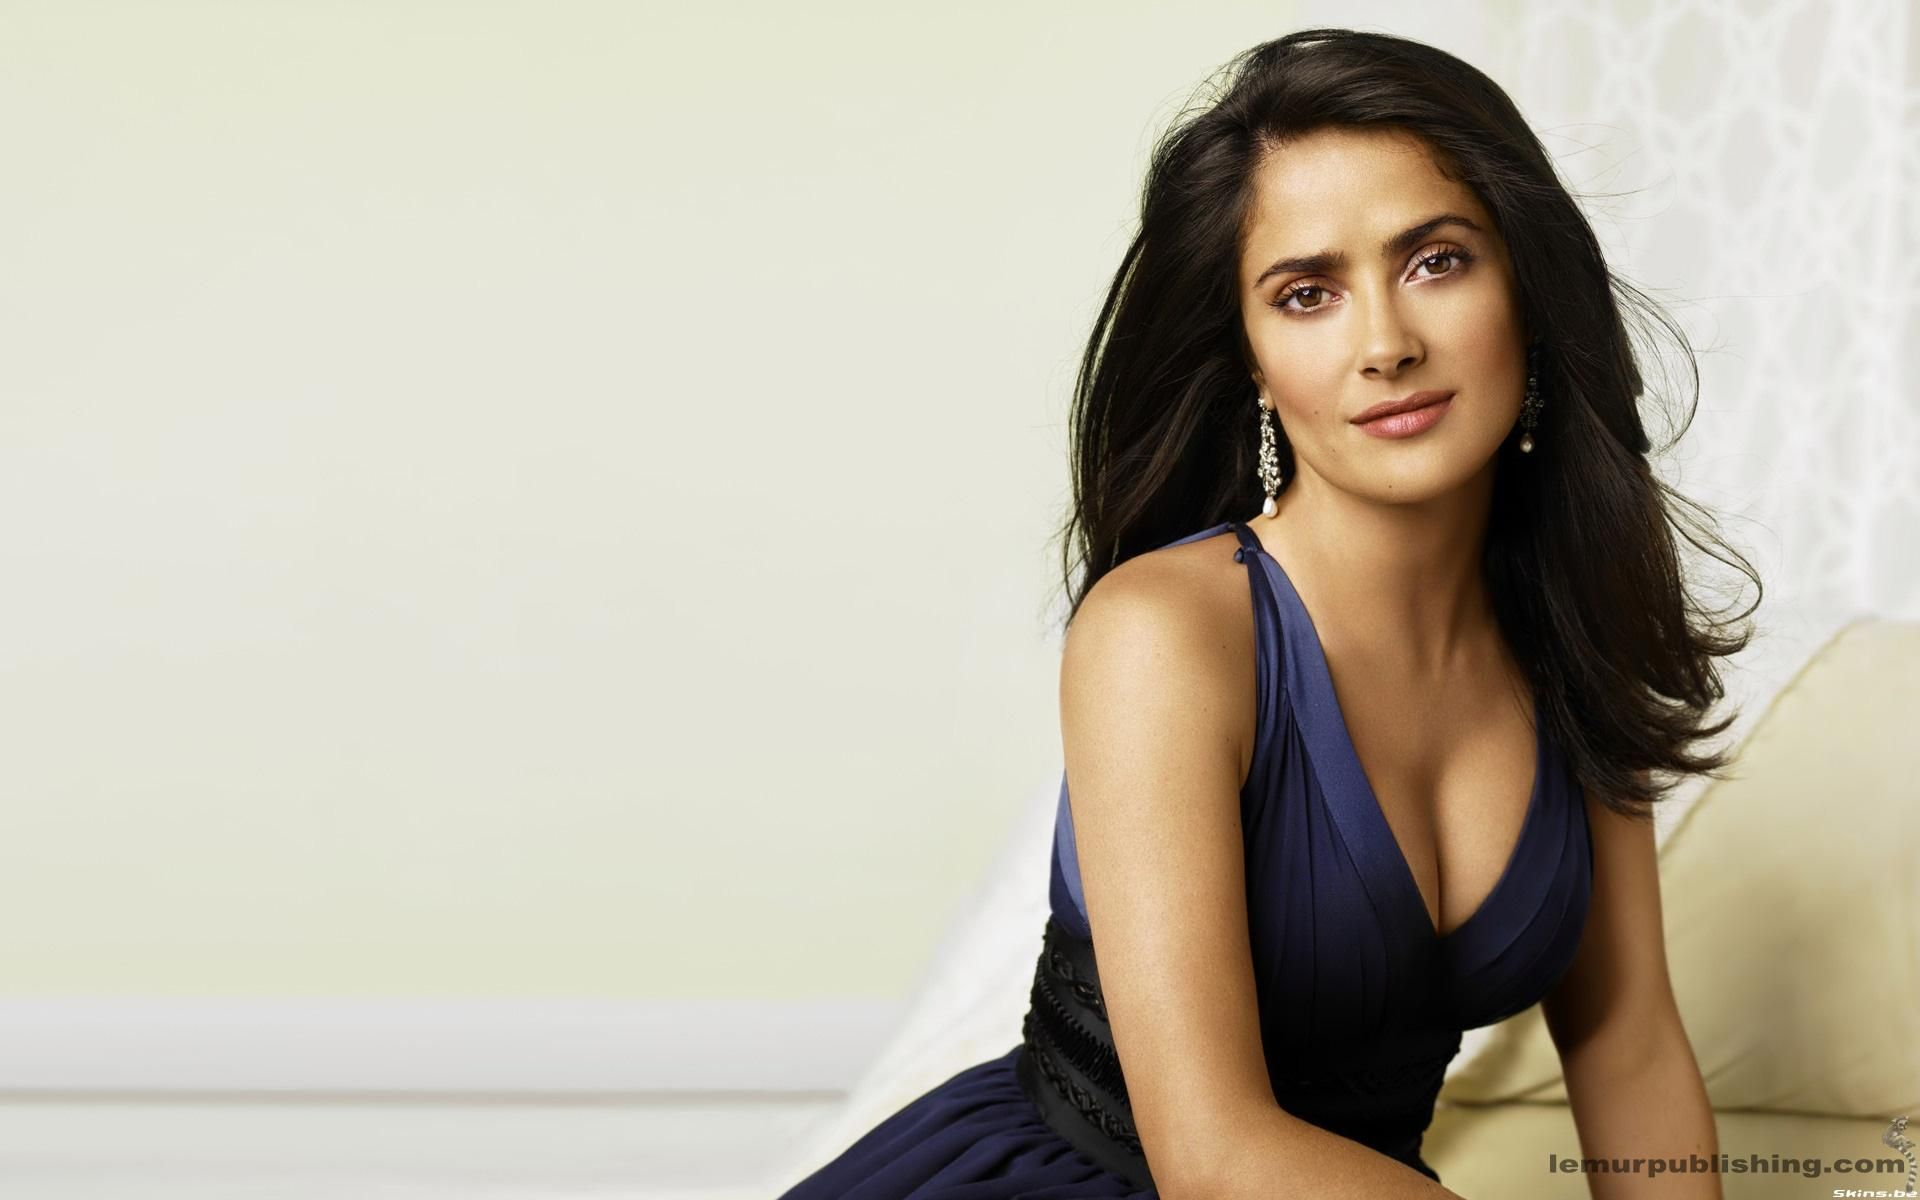 click here to download in hd format salma hayek hd wallpaper 7 http